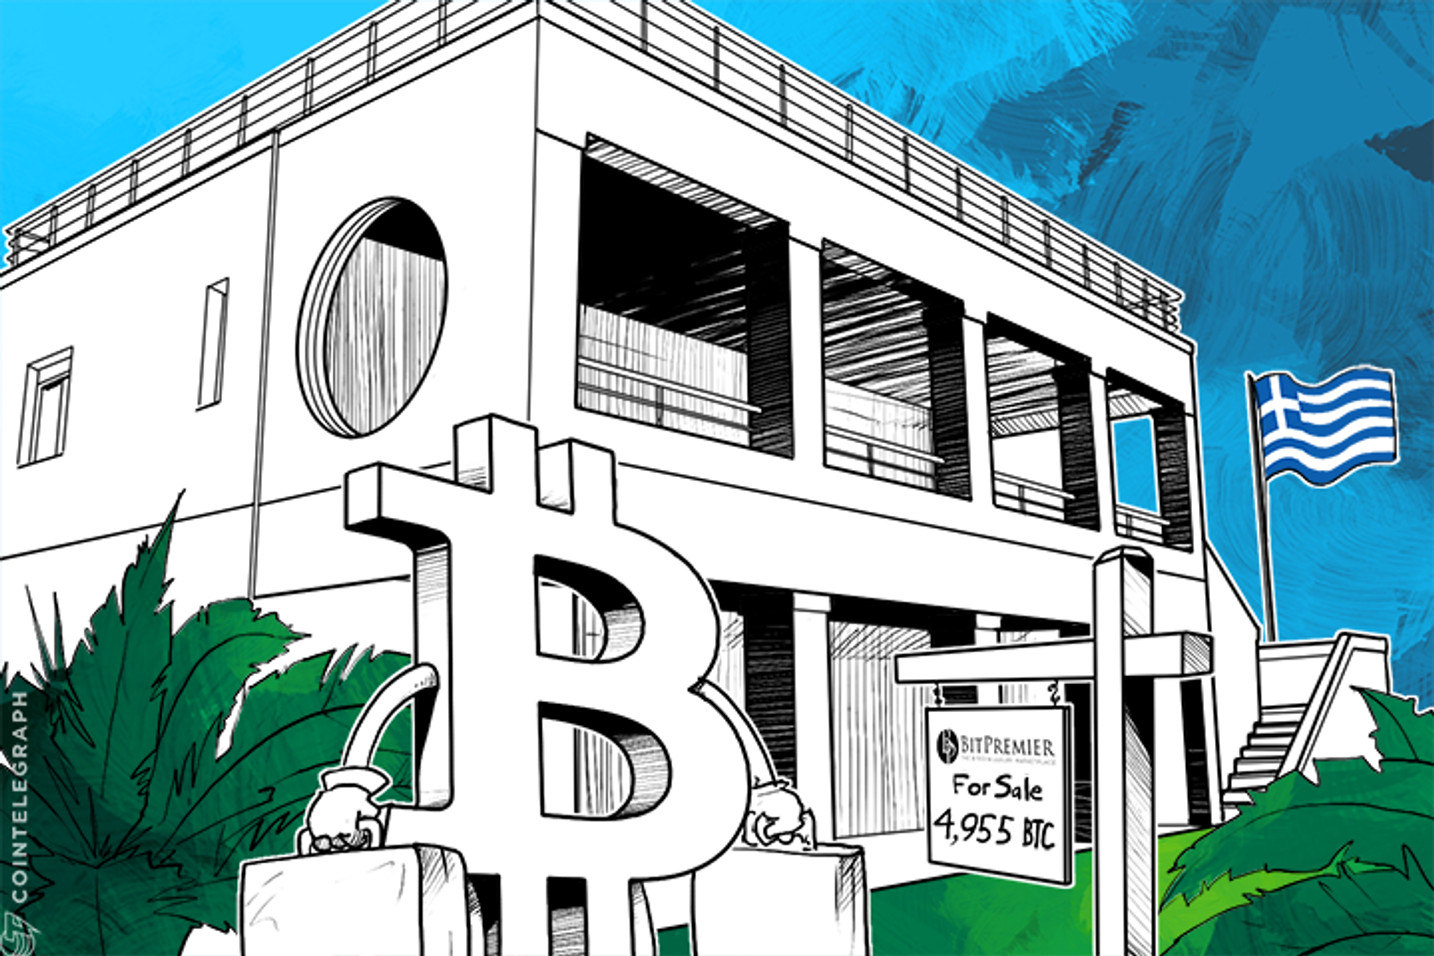 Greek Homeowner Seeks to Convert Real Estate Wealth to 4,955 BTC